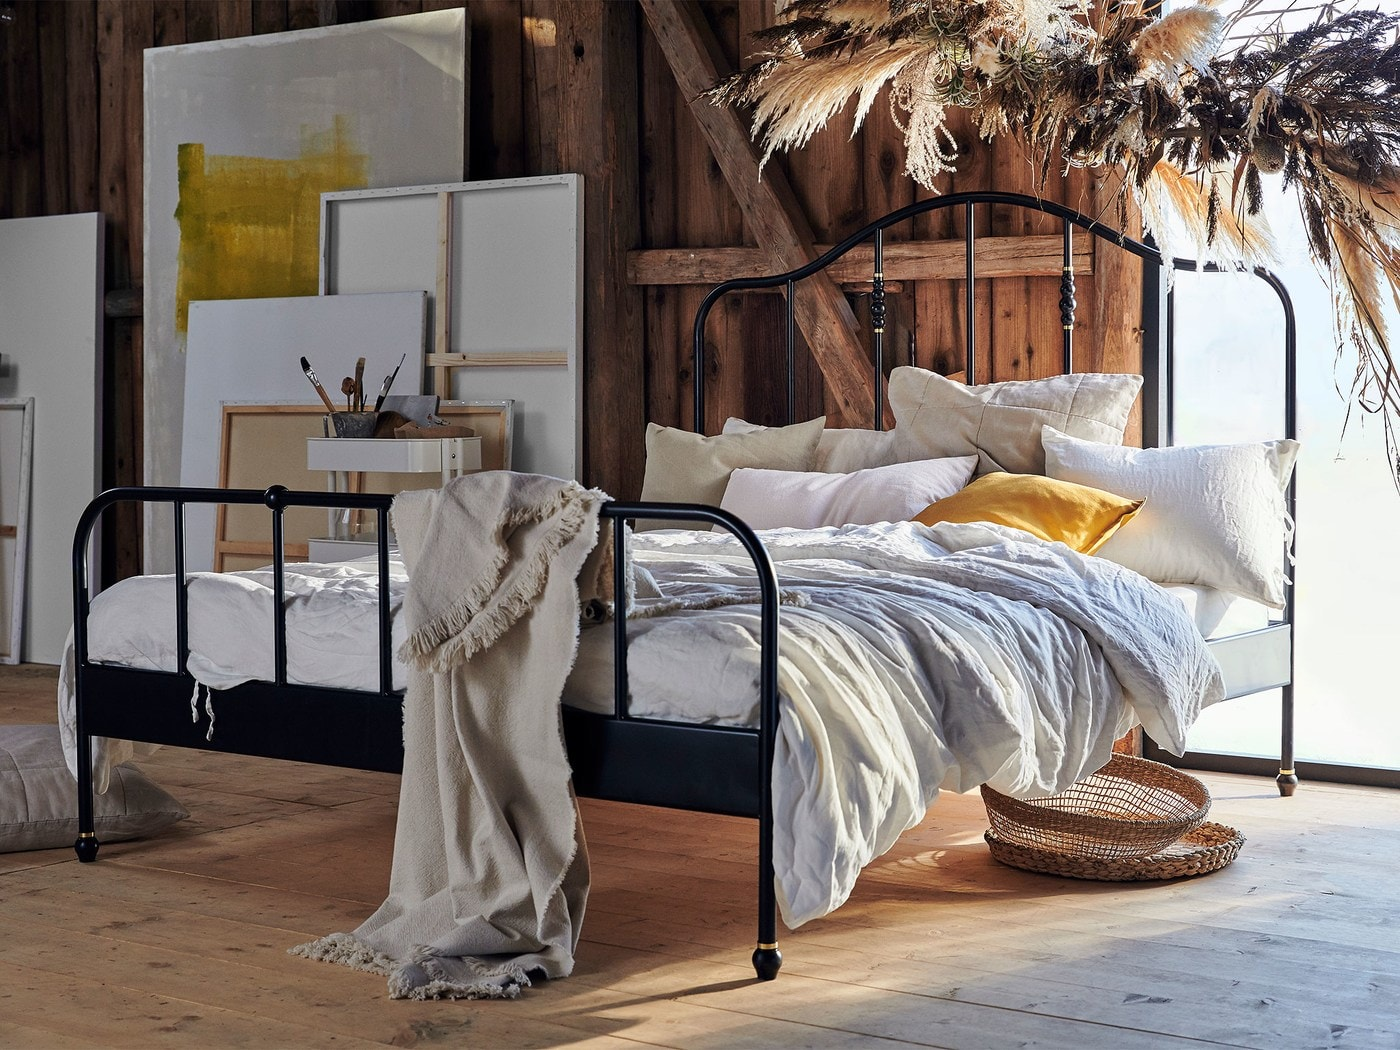 A rustic loft space with a curvy, black SAGSTUA bed frame covered in neutral bed linen and with canvases leaning against a wall.